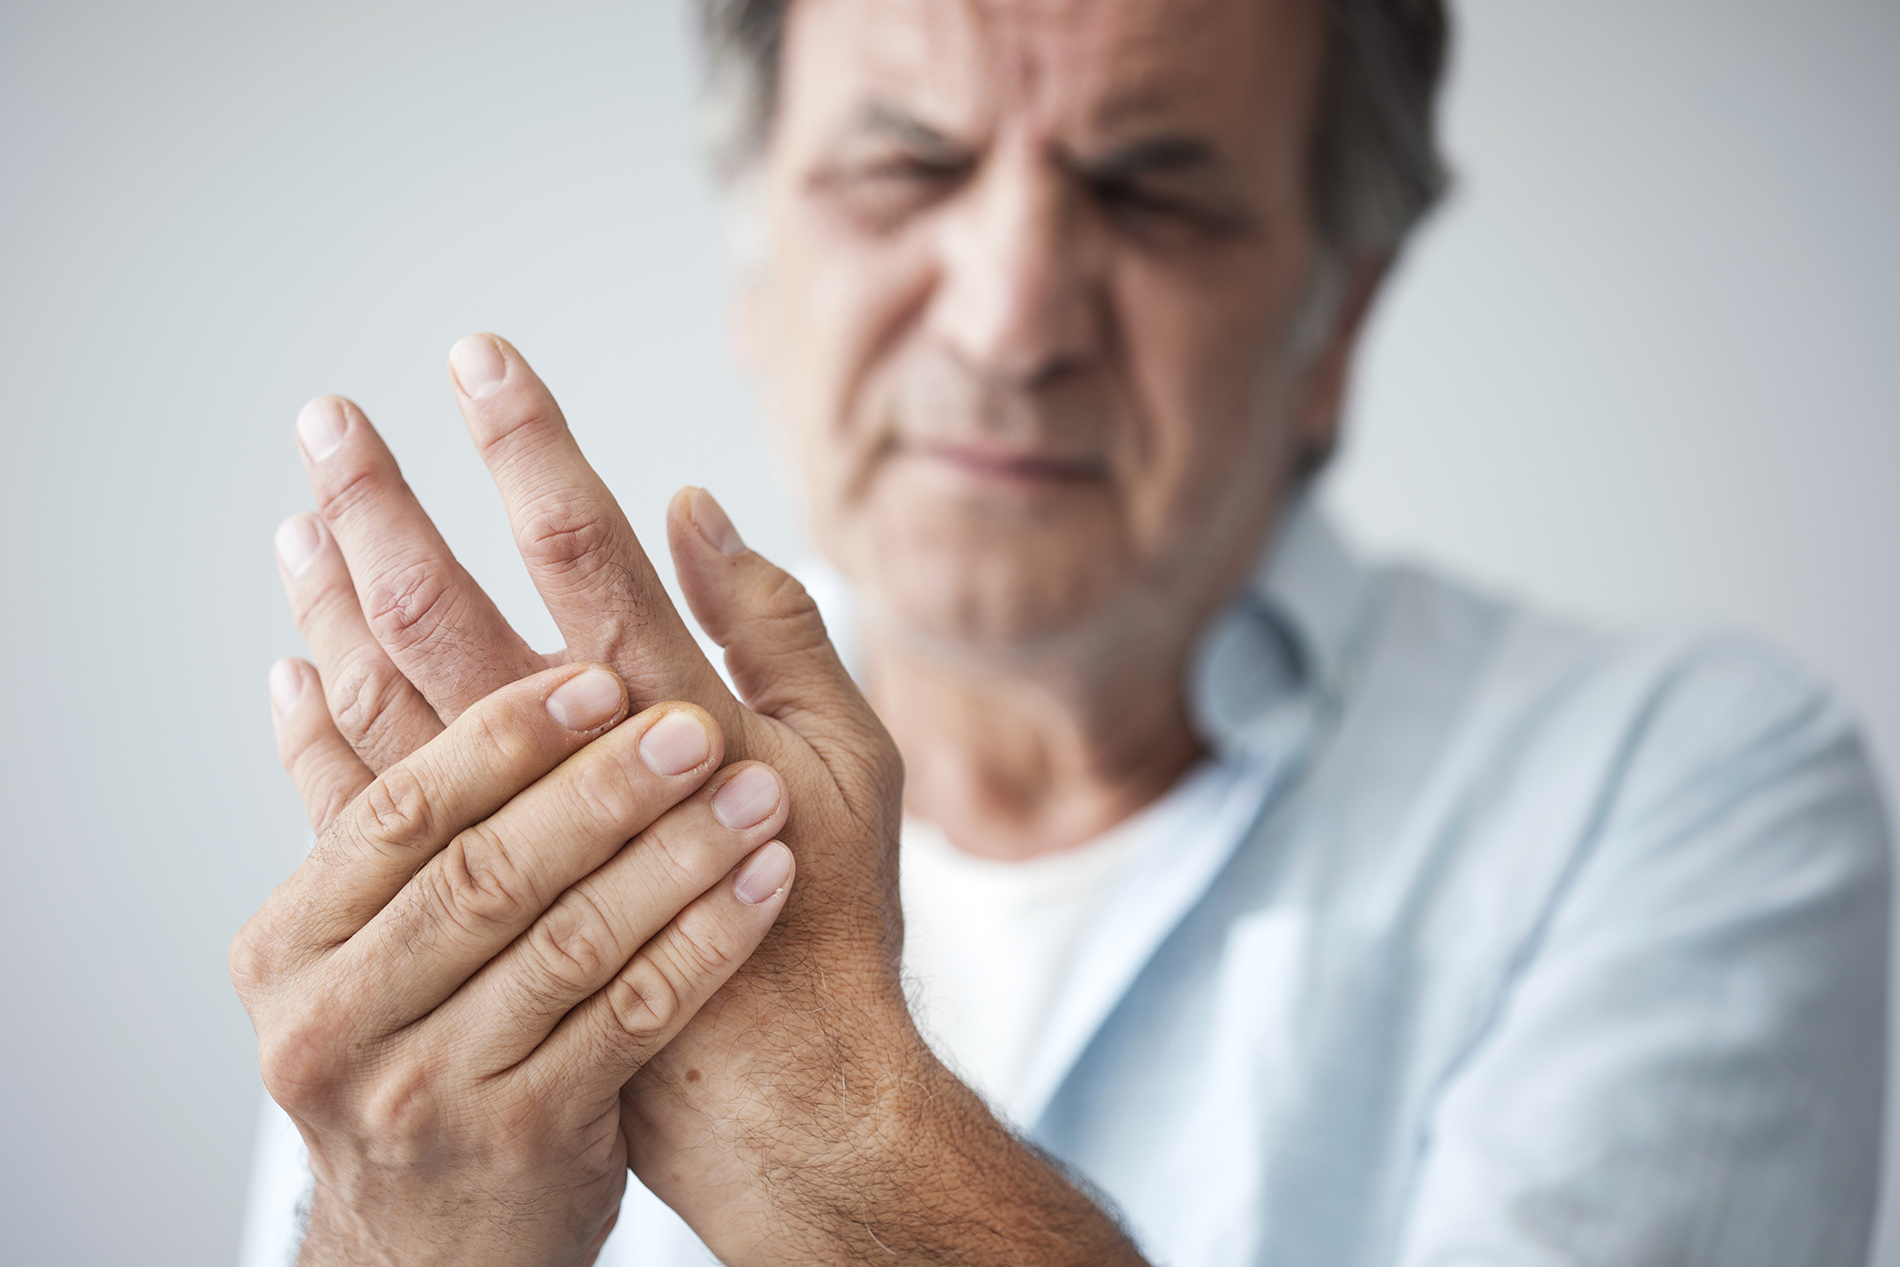 Man with painful hands